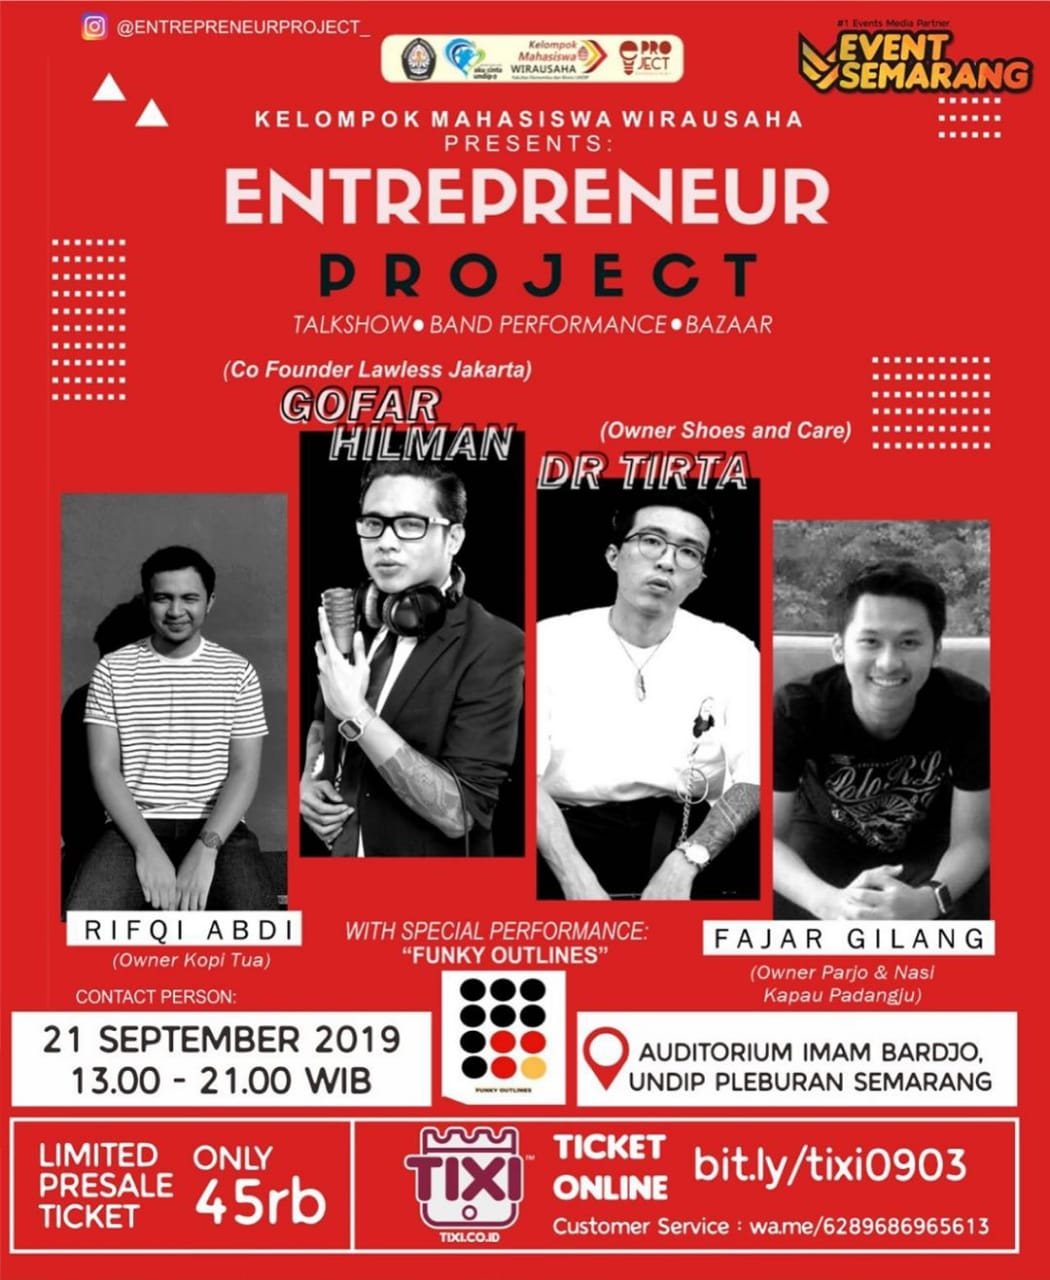 KELOMPOK MAHASISWA WIRAUSAHA PRESENTS ENTREPRENEUR PROJECT